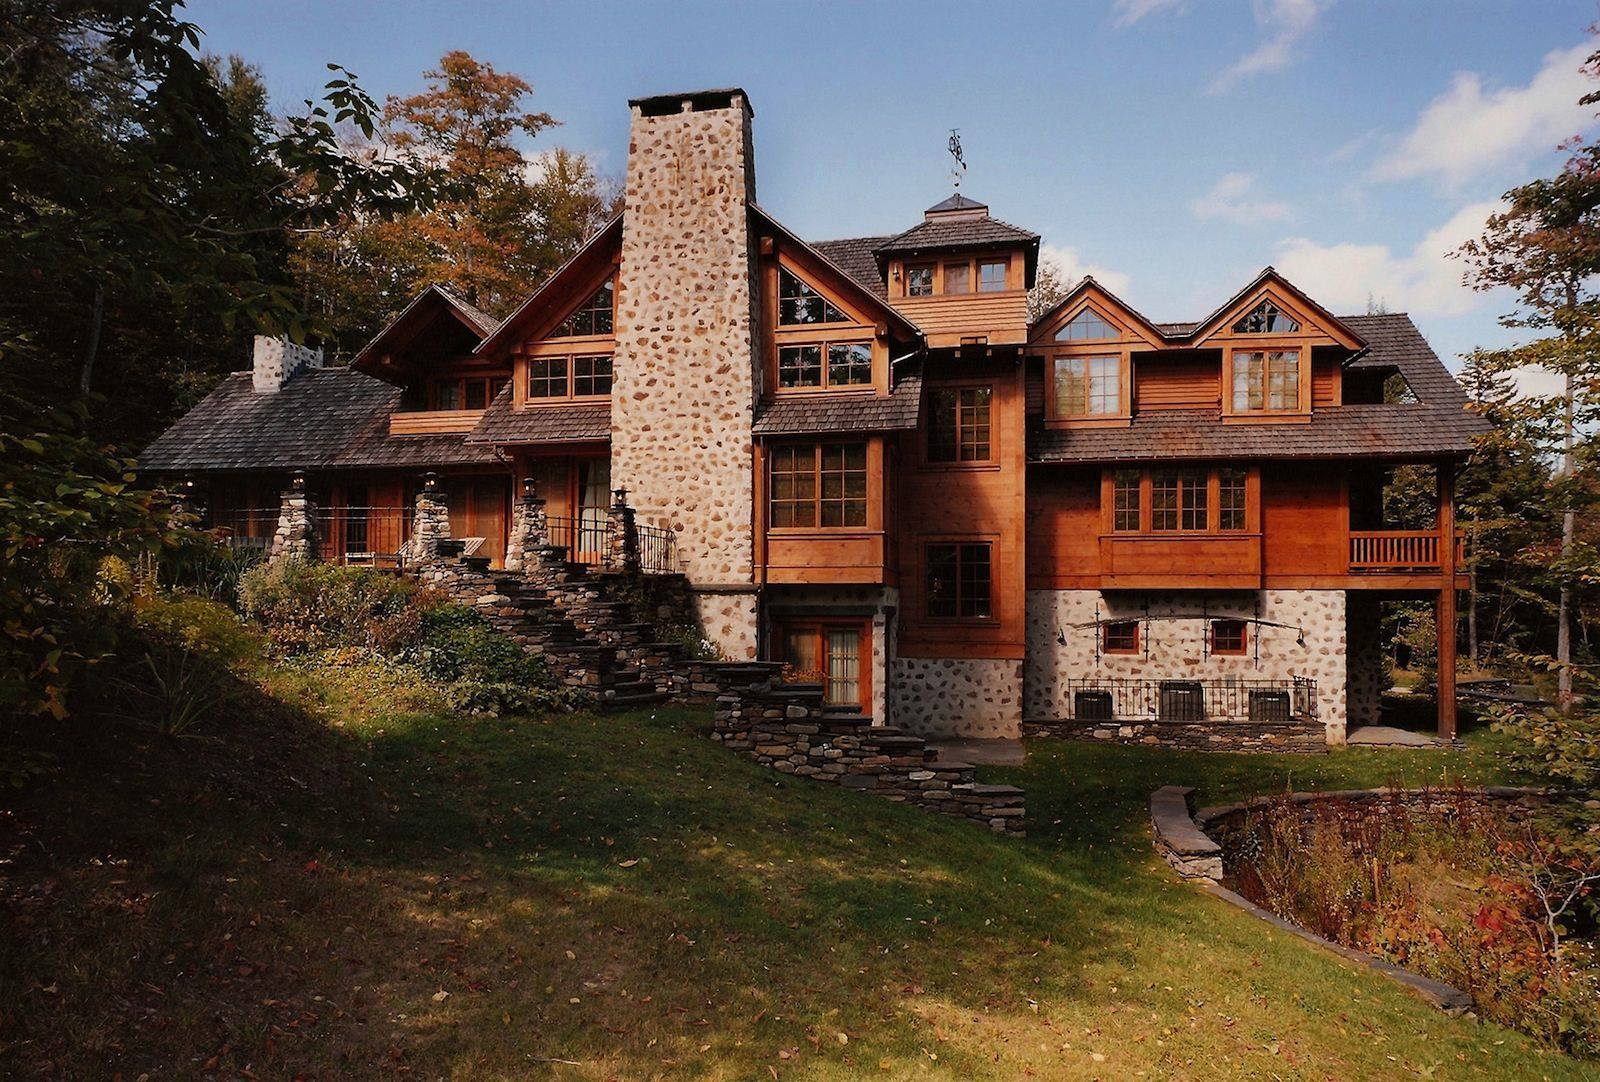 Mountain house pictures full hd pictures for Full hd house image